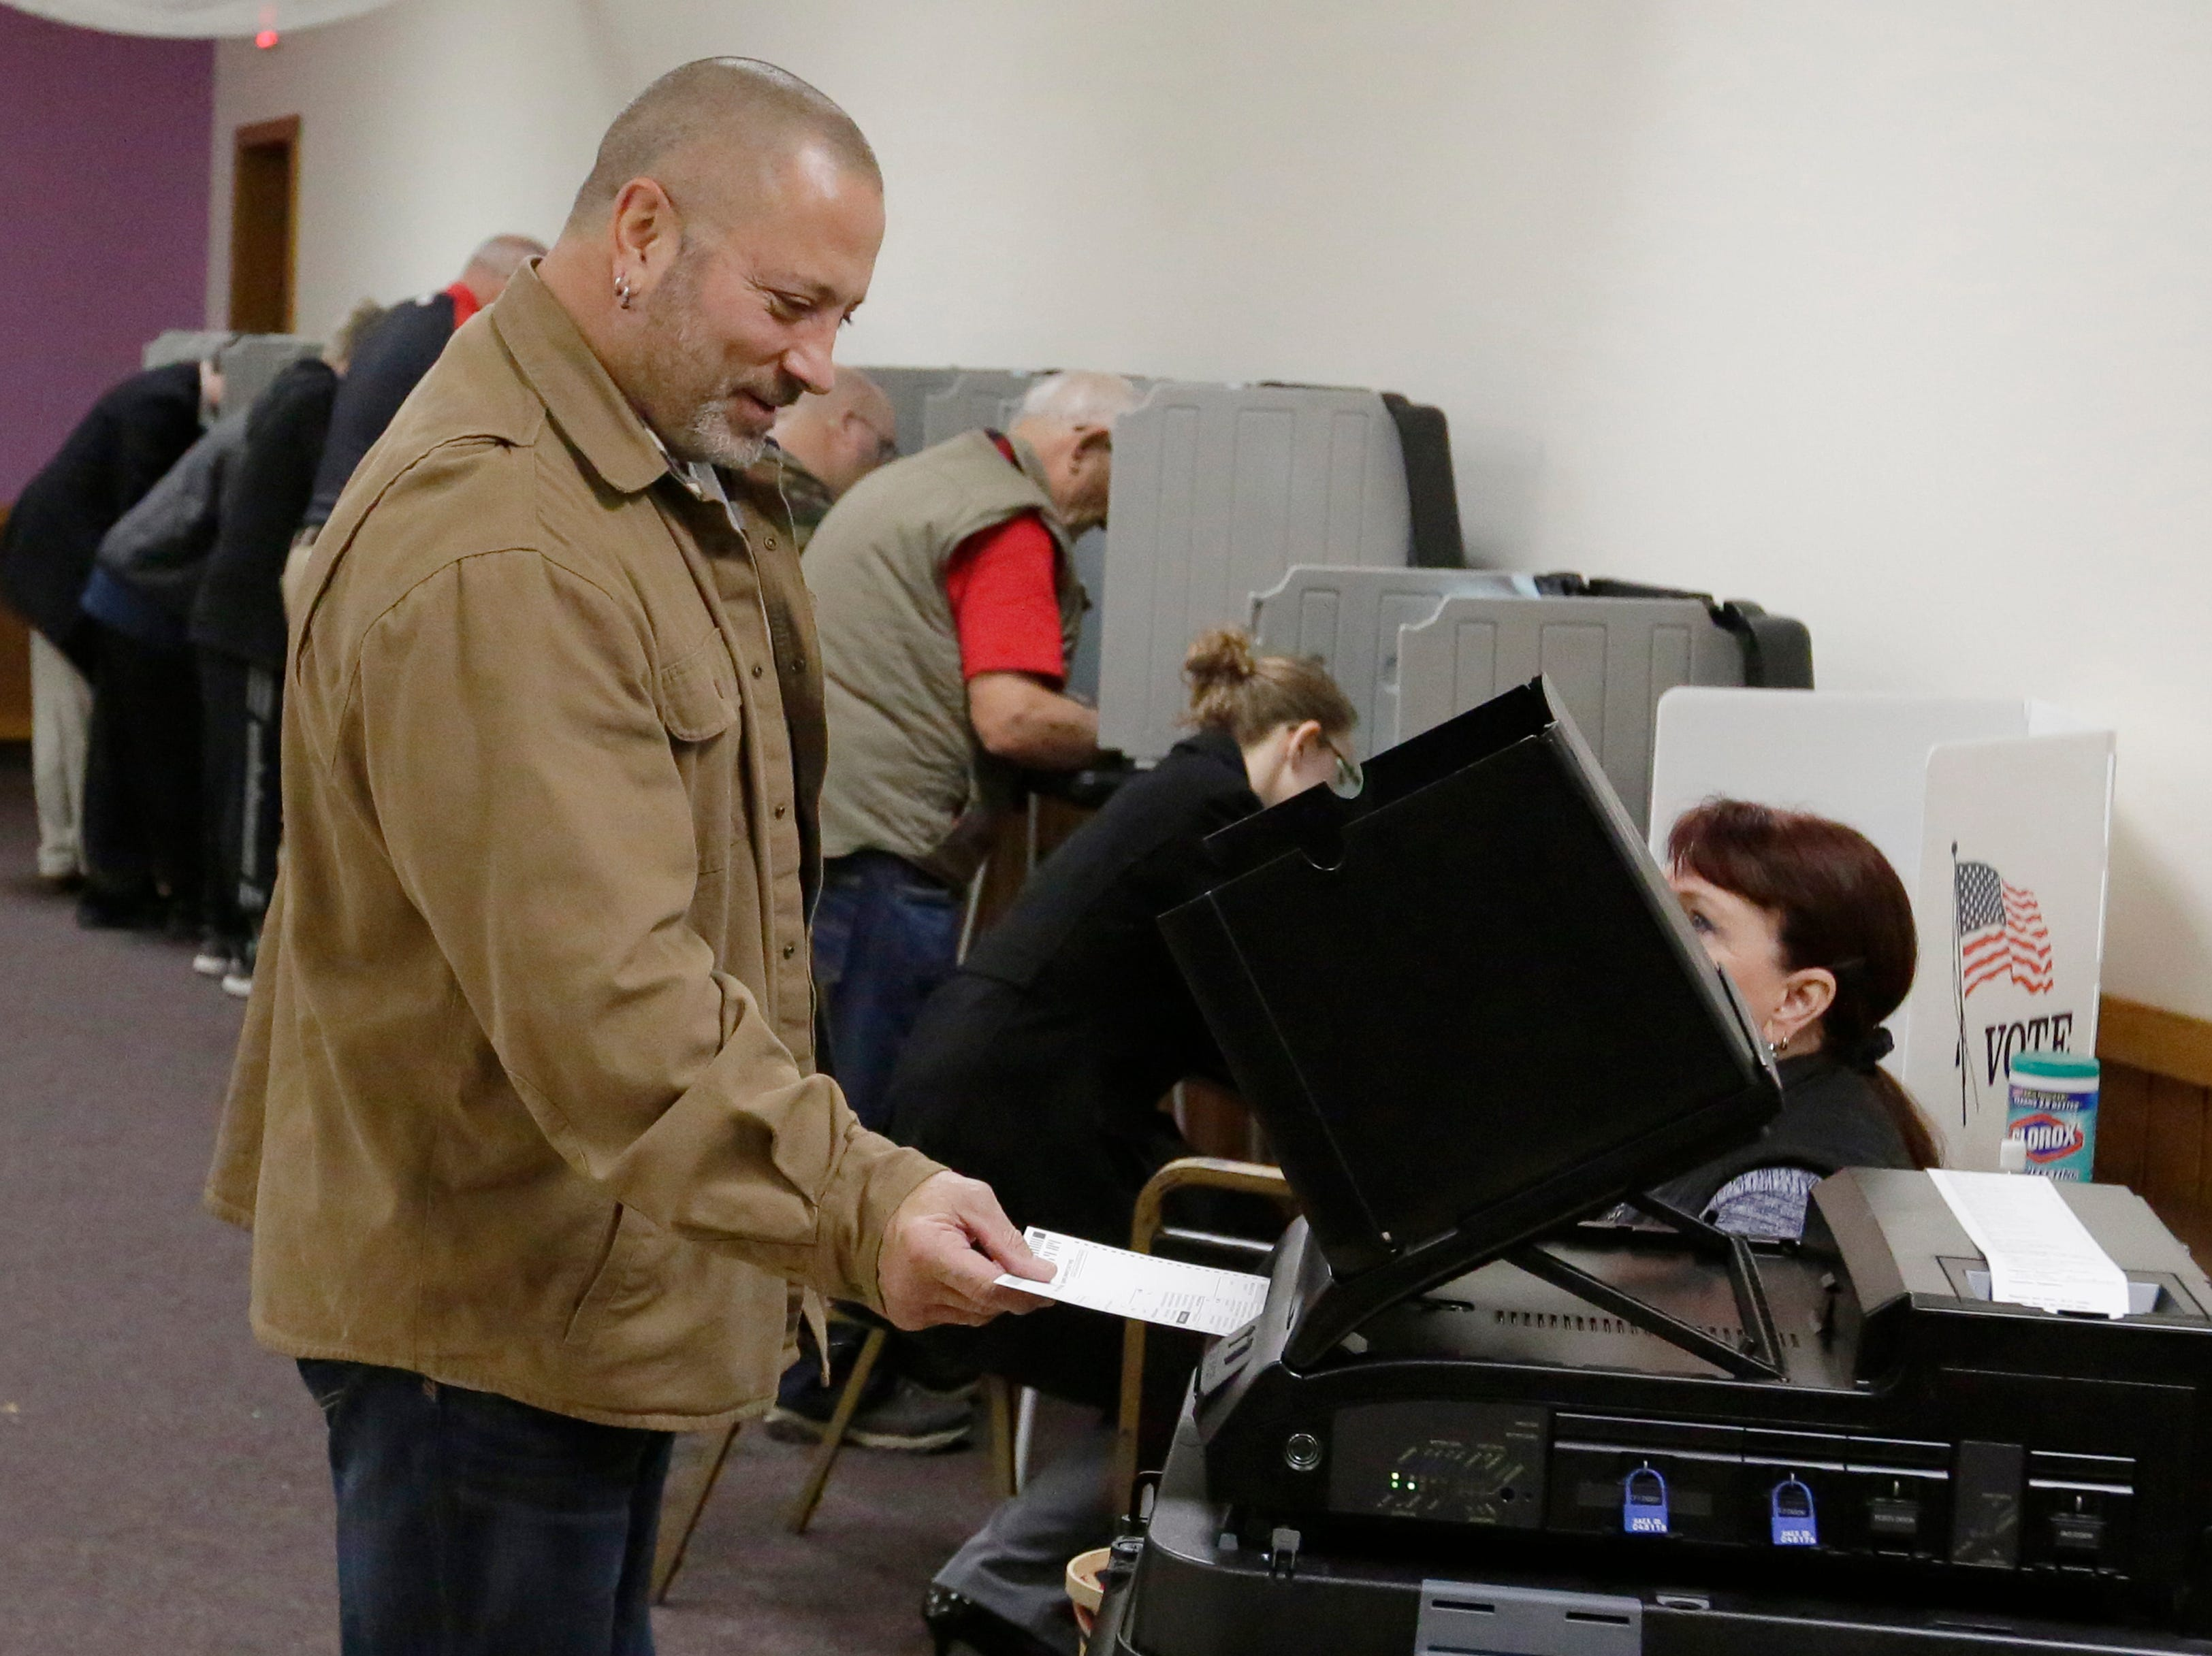 William Ranieri inserts his ballot into the voting machine at voting district 13 at the Oshkosh Elks Lodge.  The mid-term voting kept poll workers busy as voters waited in lines at most polling stations in Oshkosh, Wis., Tuesday, November 6, 2018.  